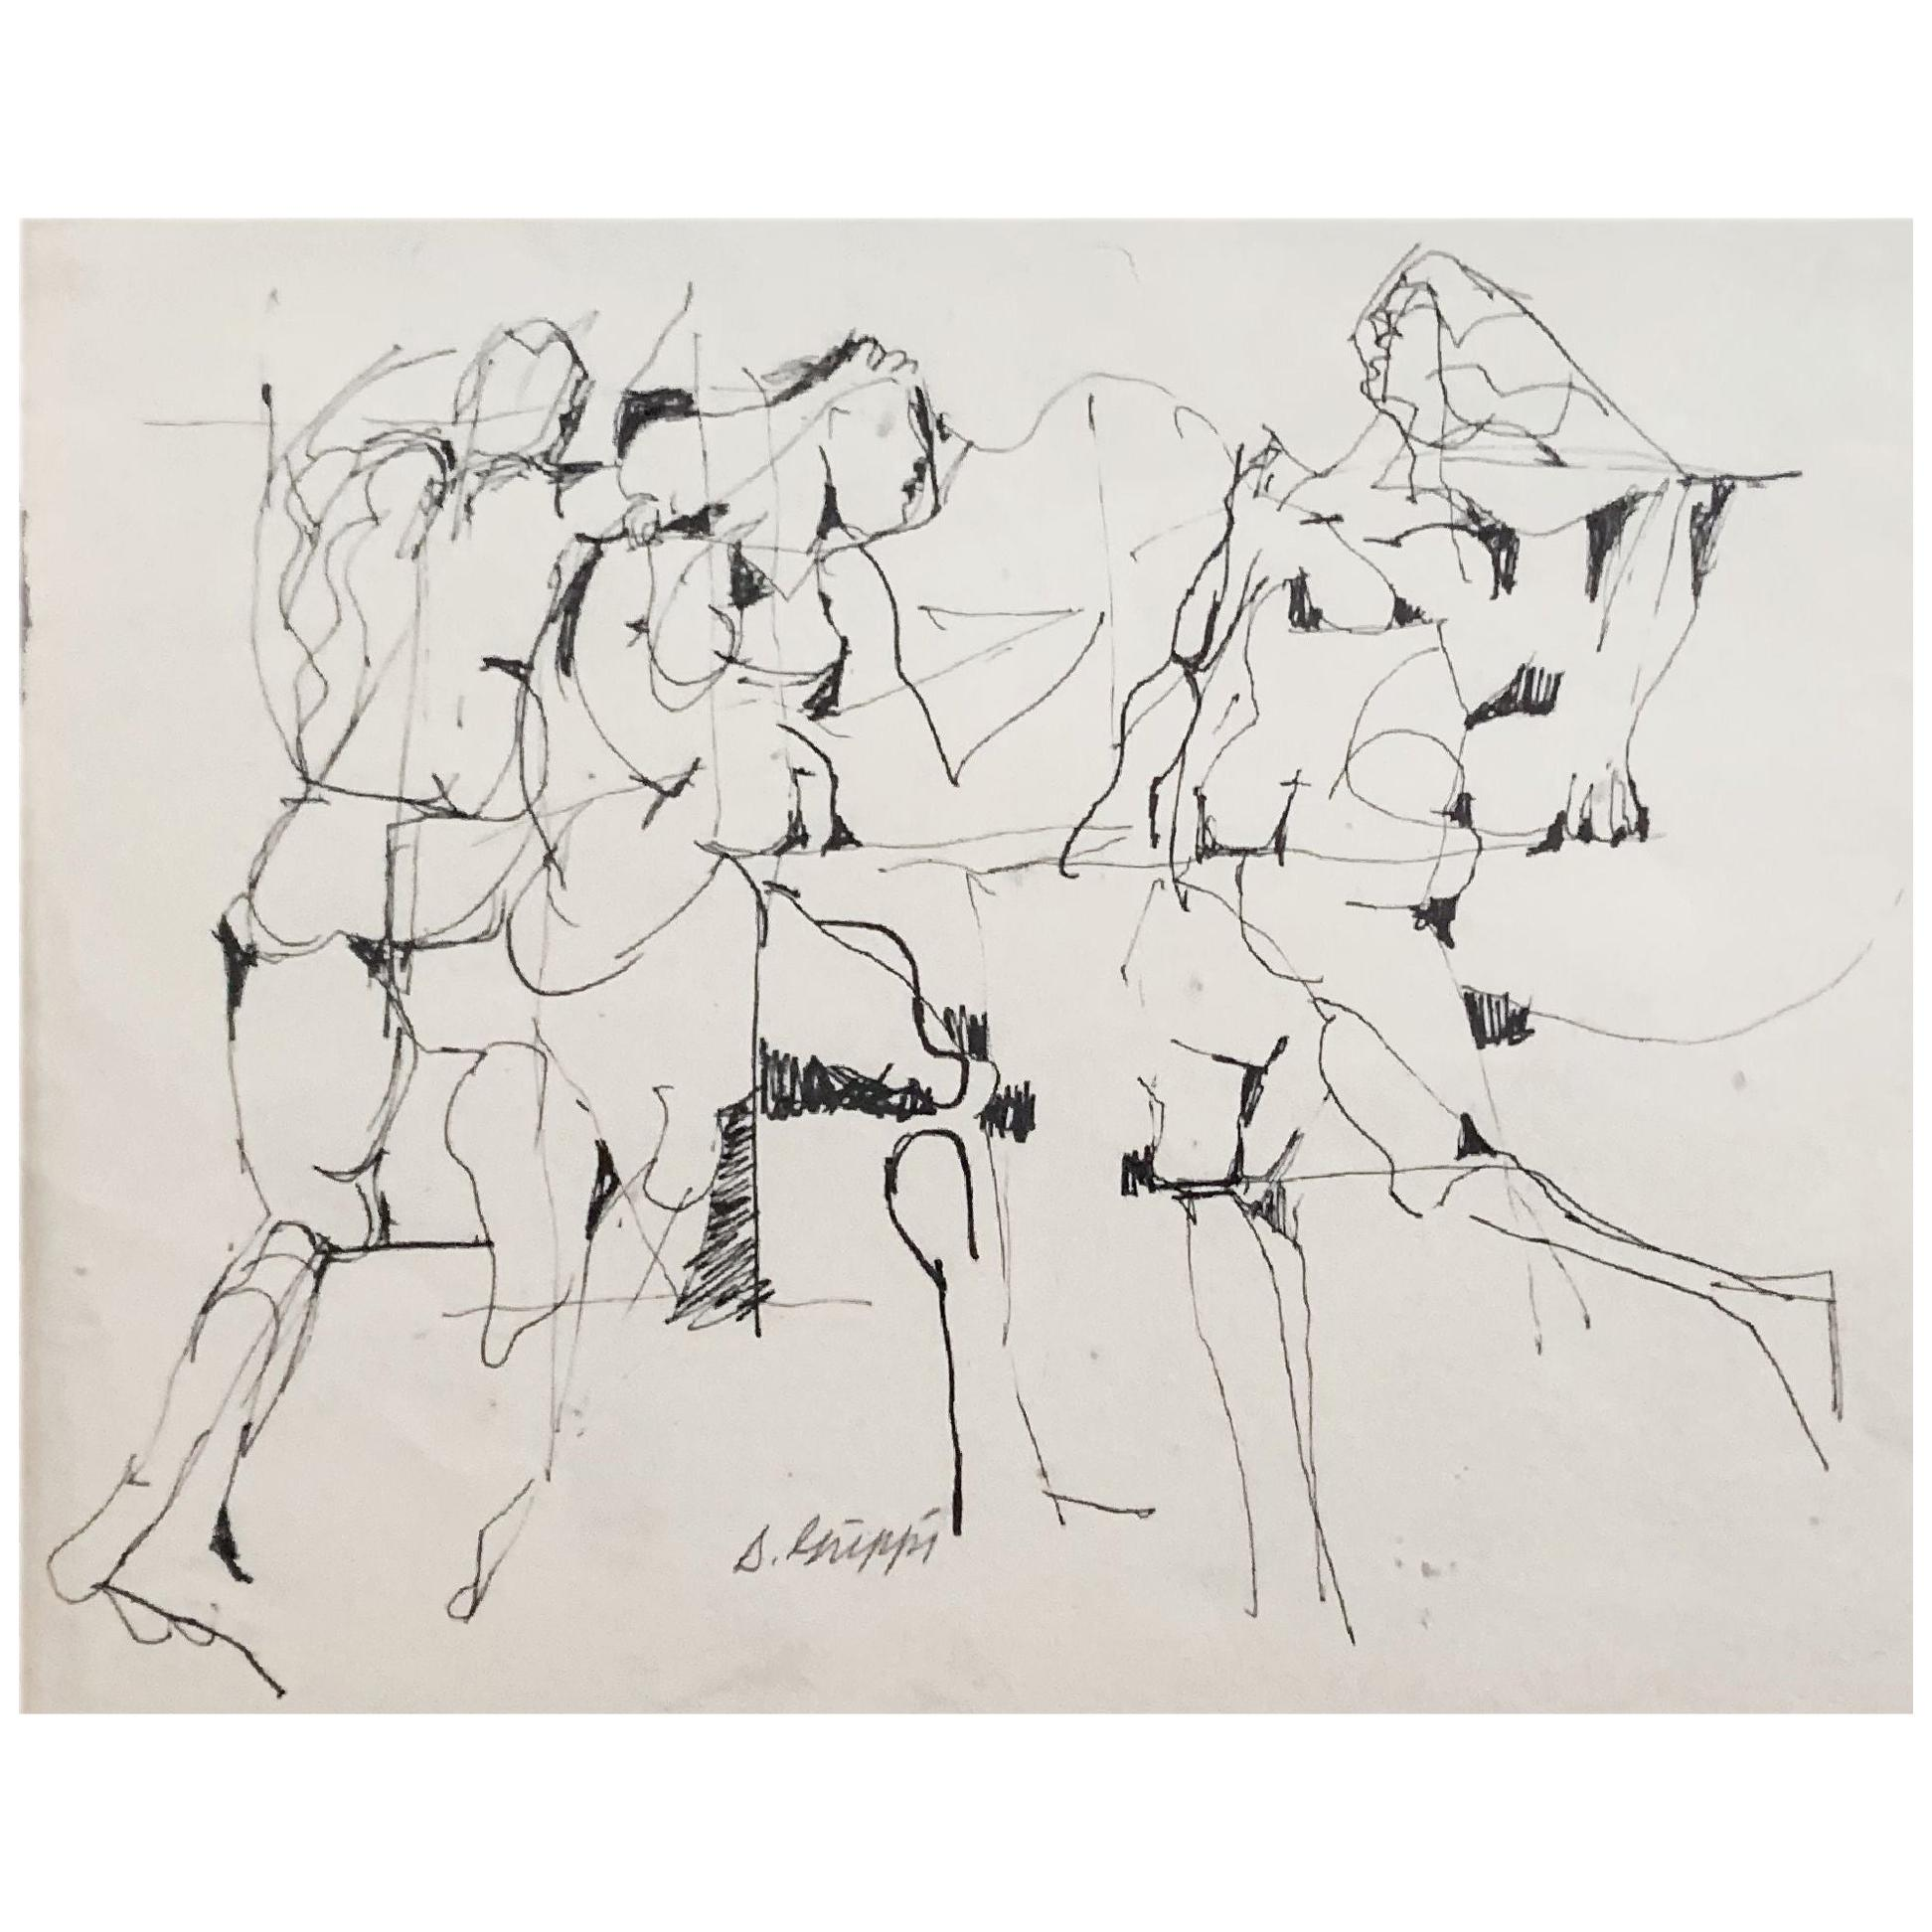 Midcentury Abstract Expressionist Ink Drawing on Paper by Salvatore Grippi, 1953